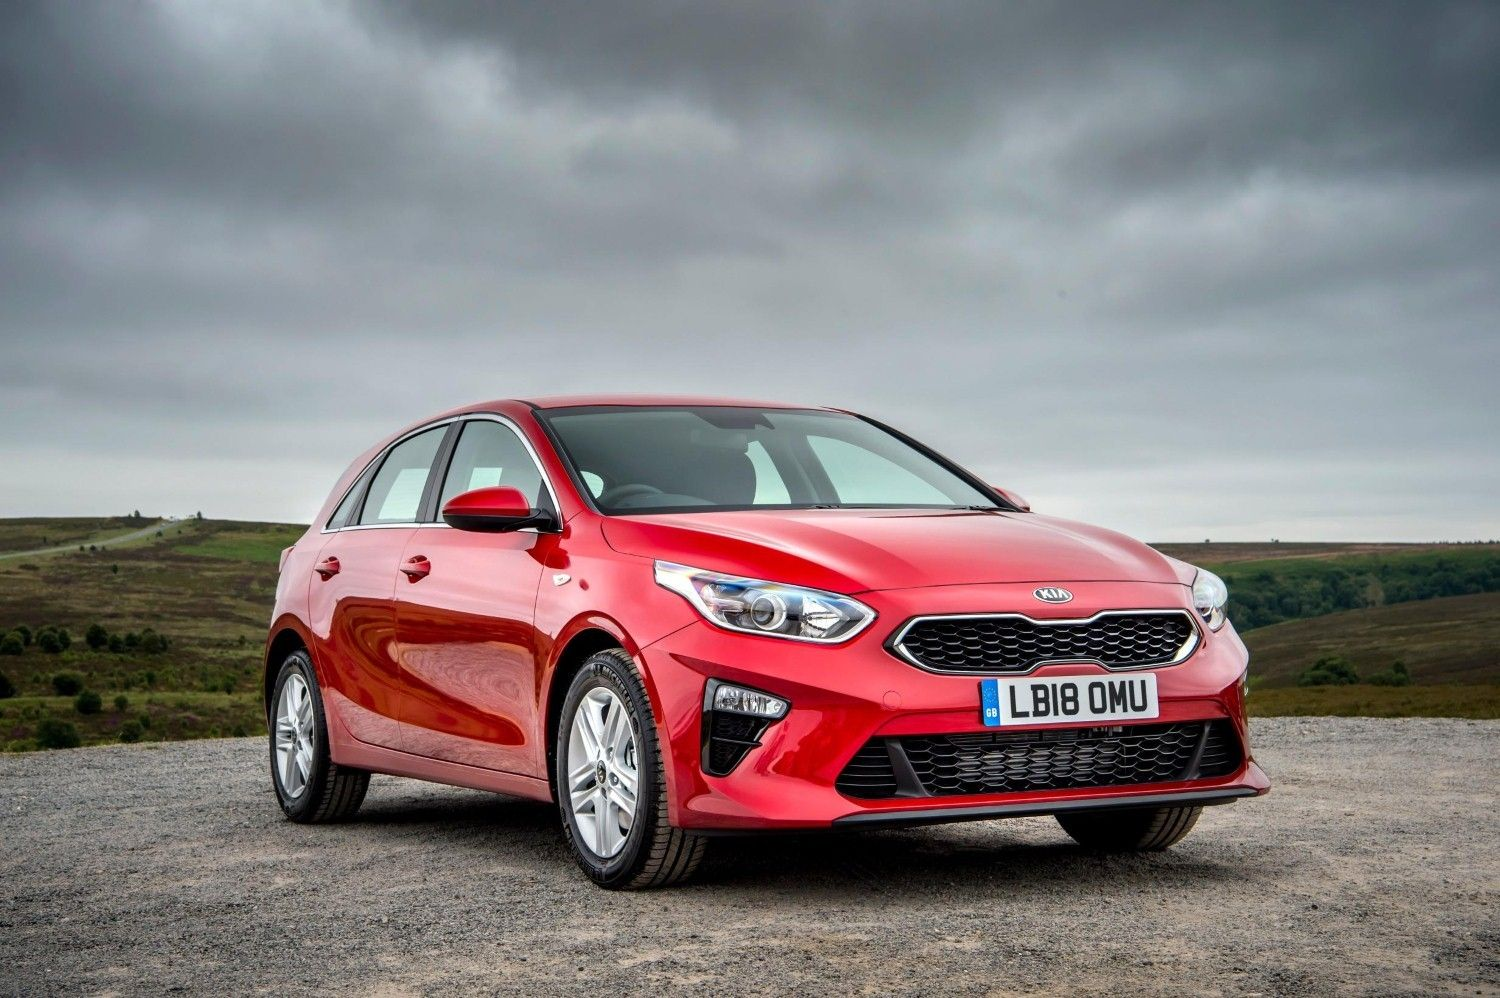 New Kia Ceed all fleets need to know Kia ceed, Kia, Cars uk